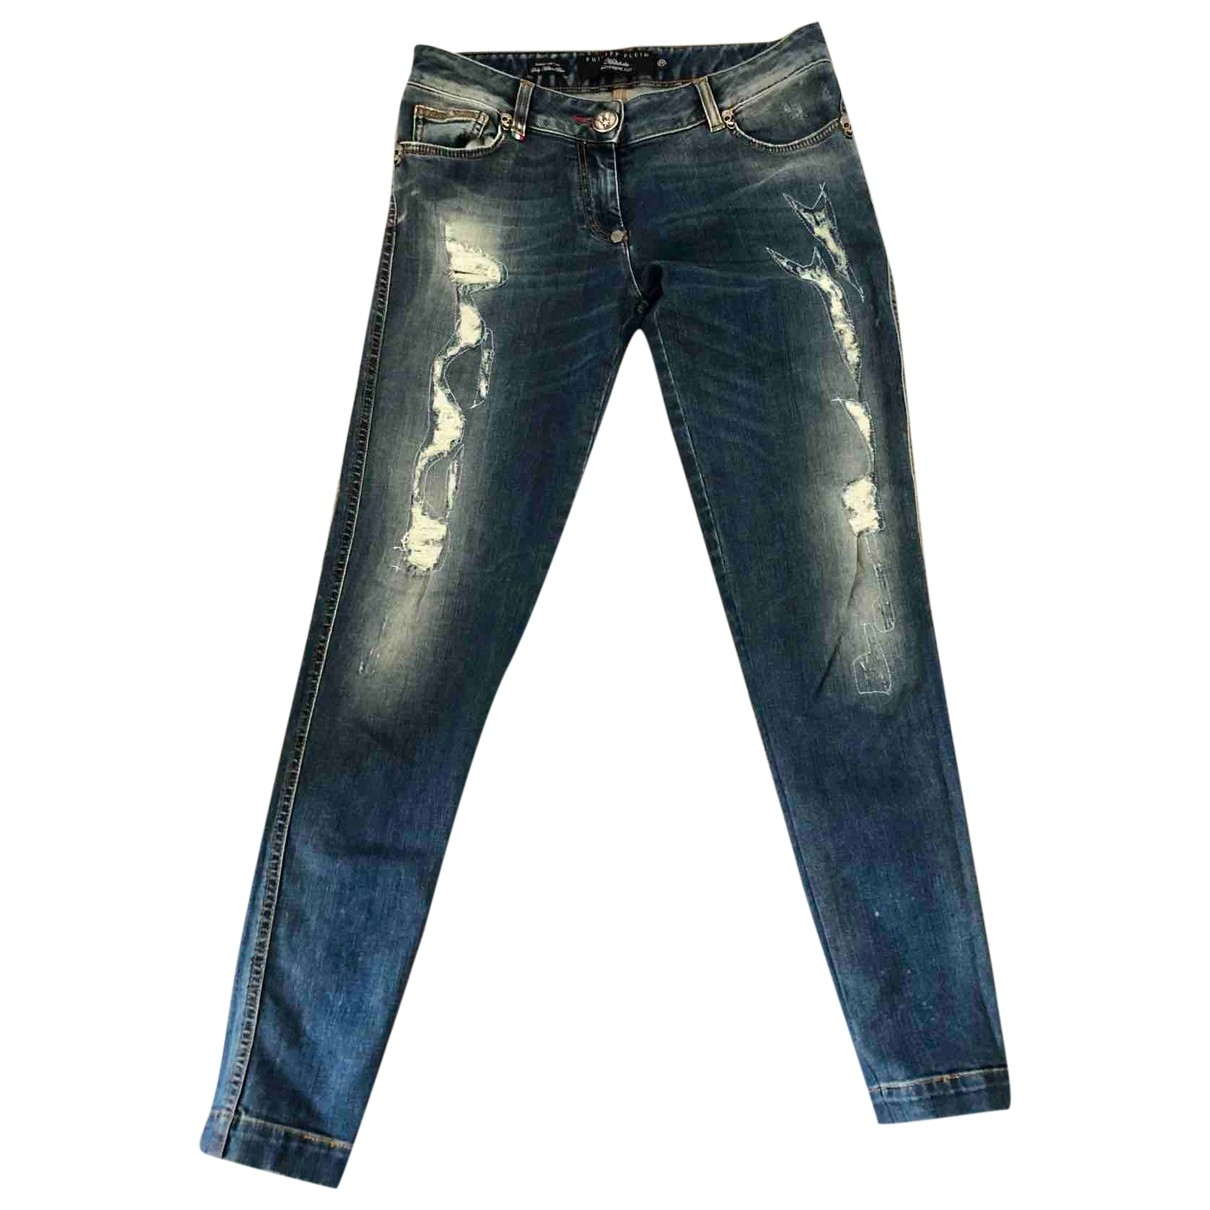 Philipp Plein \N Blue Cotton - elasthane Jeans for Women 36 FR